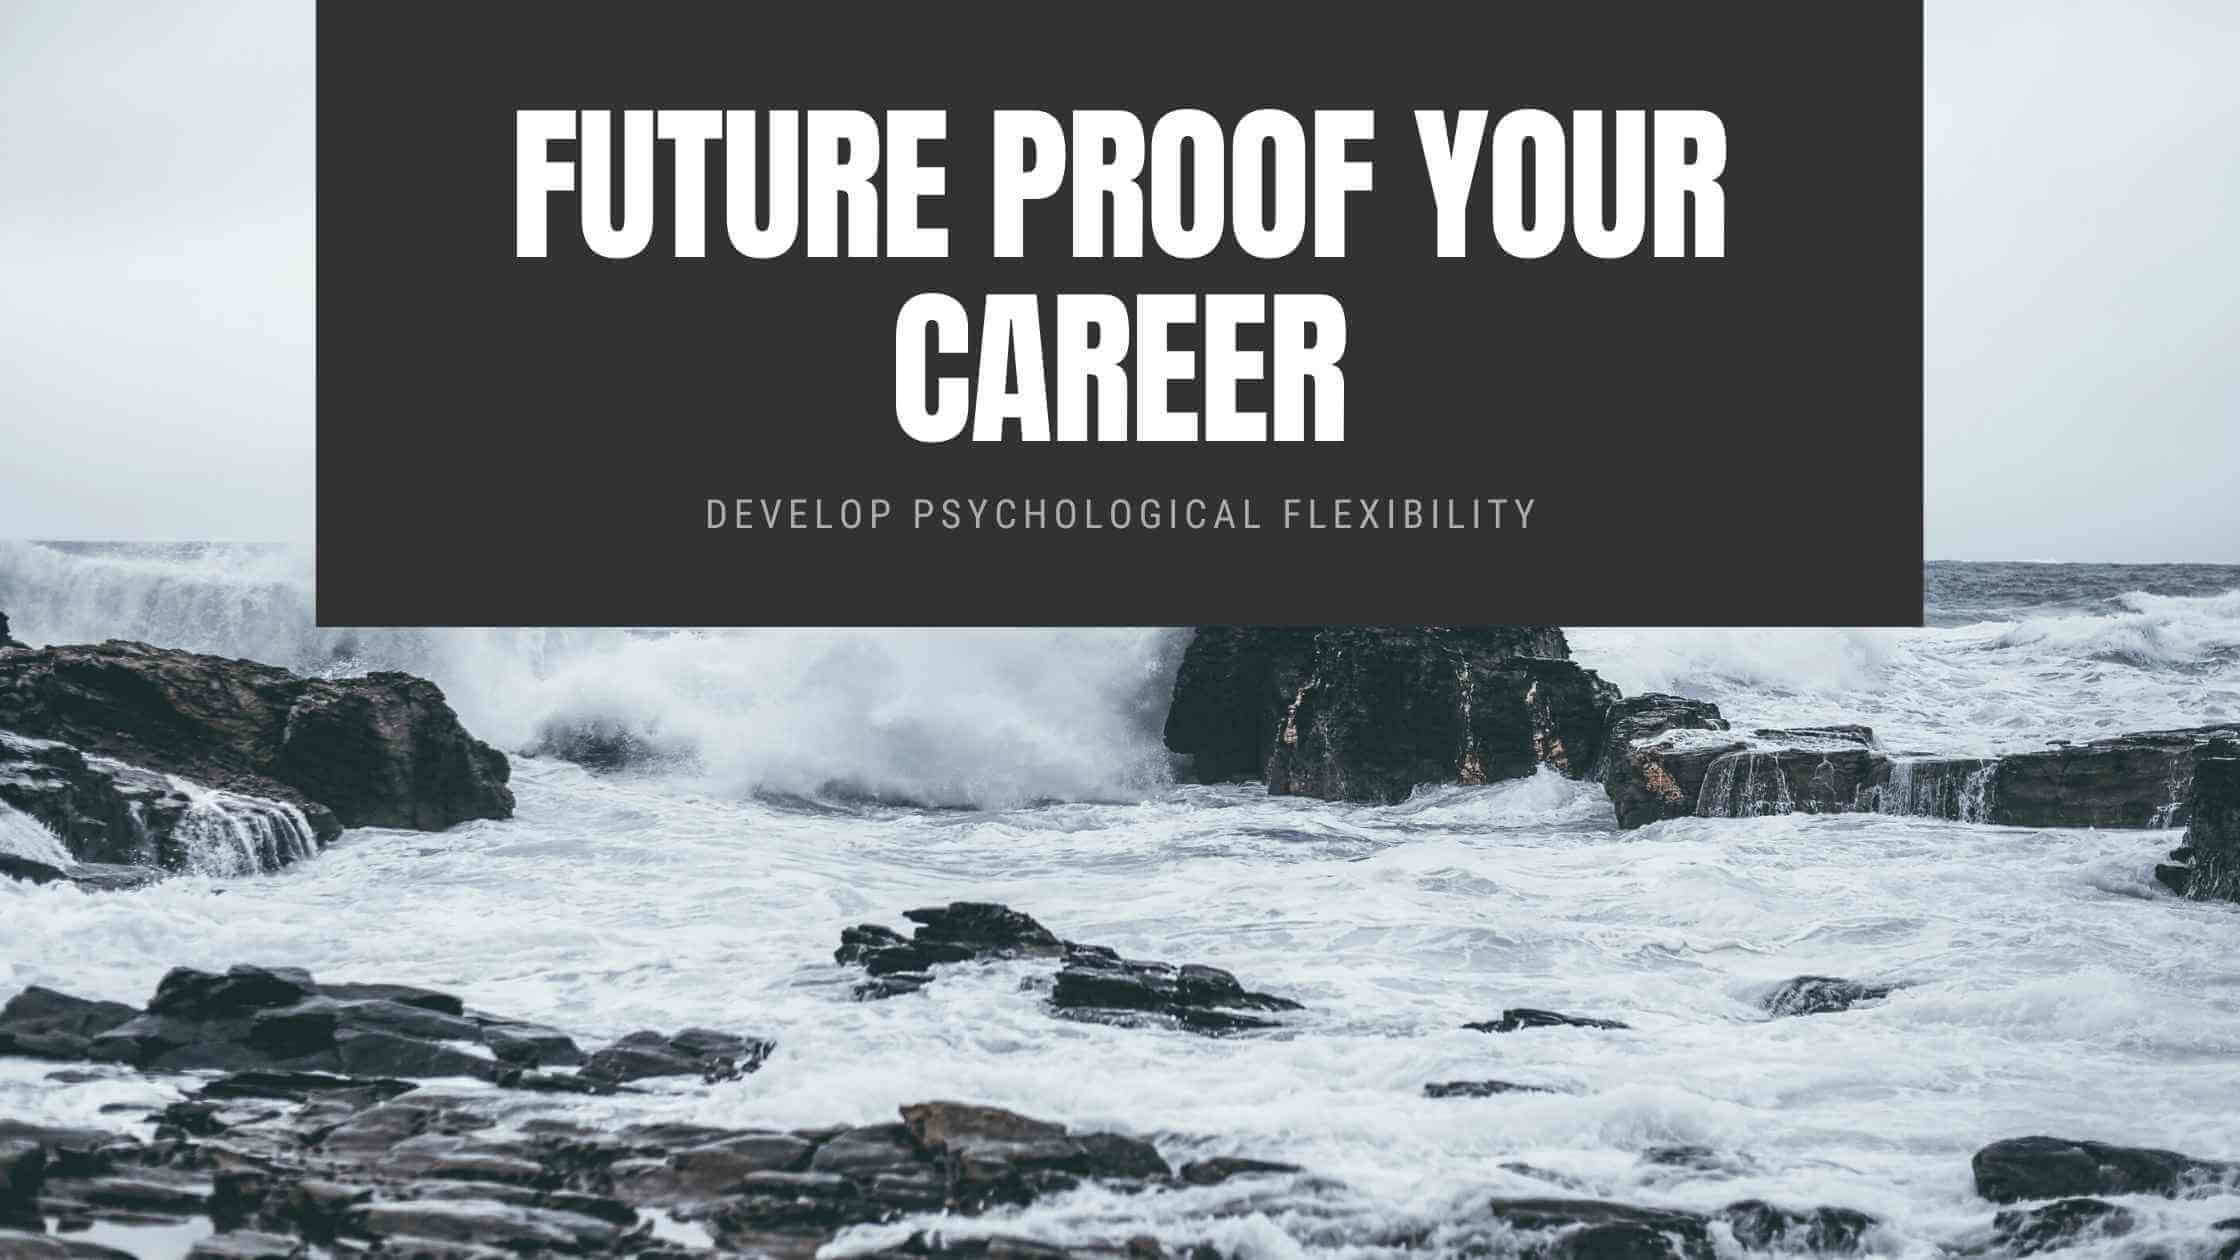 How to Future Proof your Career